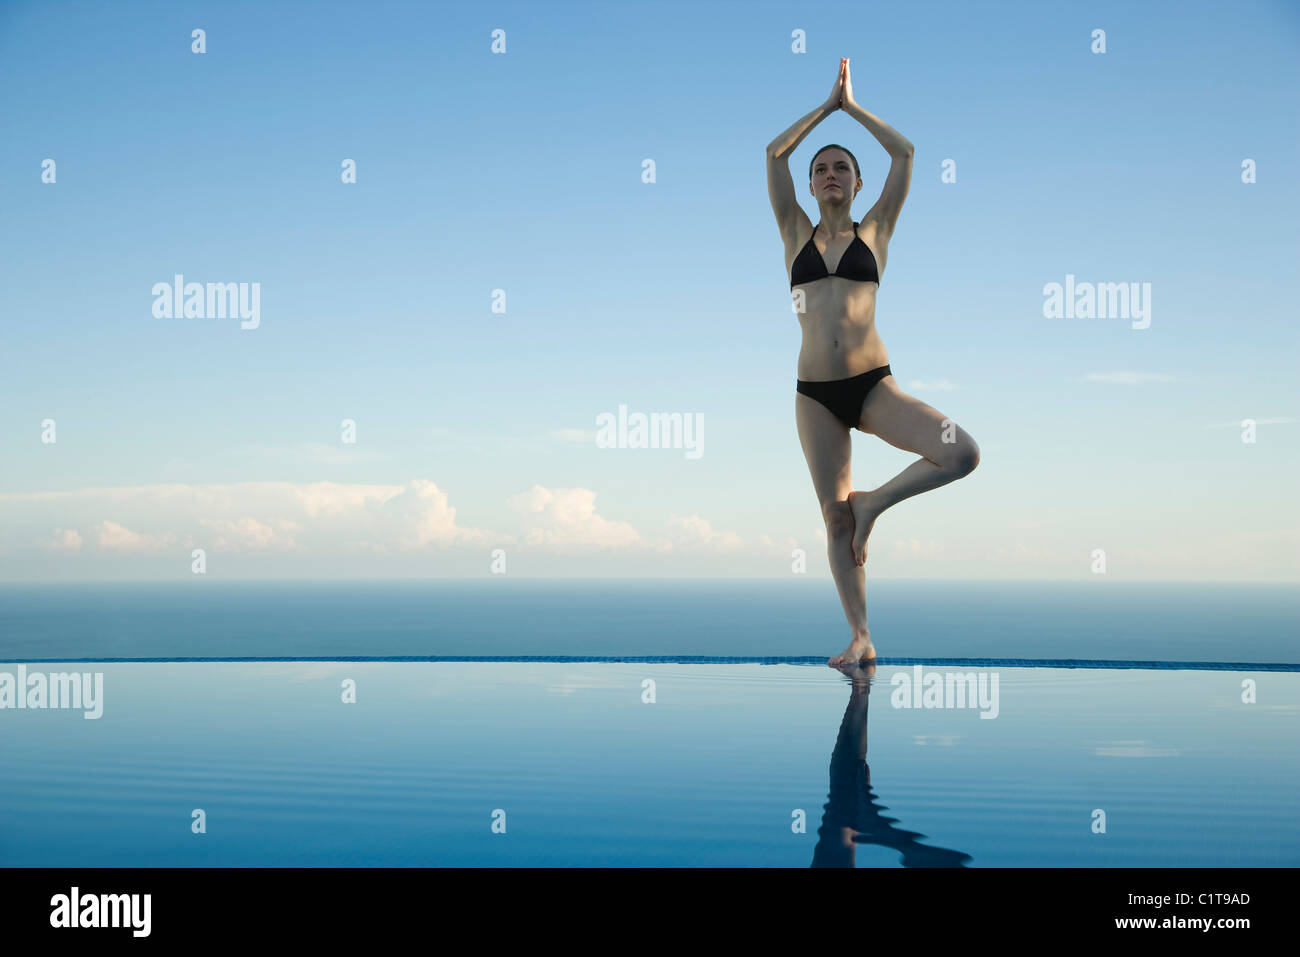 Woman standing in tree pose on edge of infinity pool - Stock Image